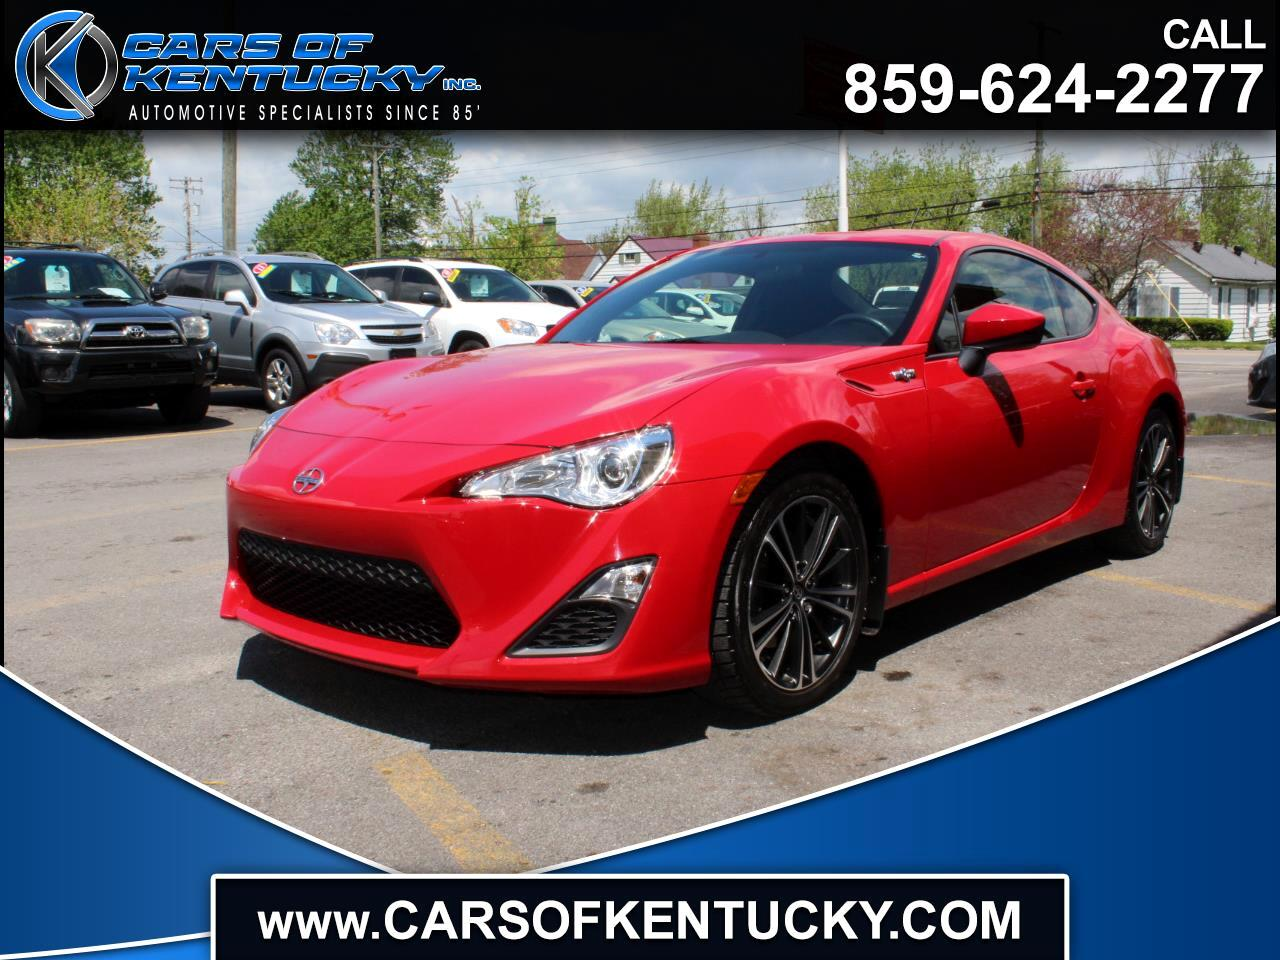 Used Cars For Sale Richmond Ky 40475 Cars Of Kentucky